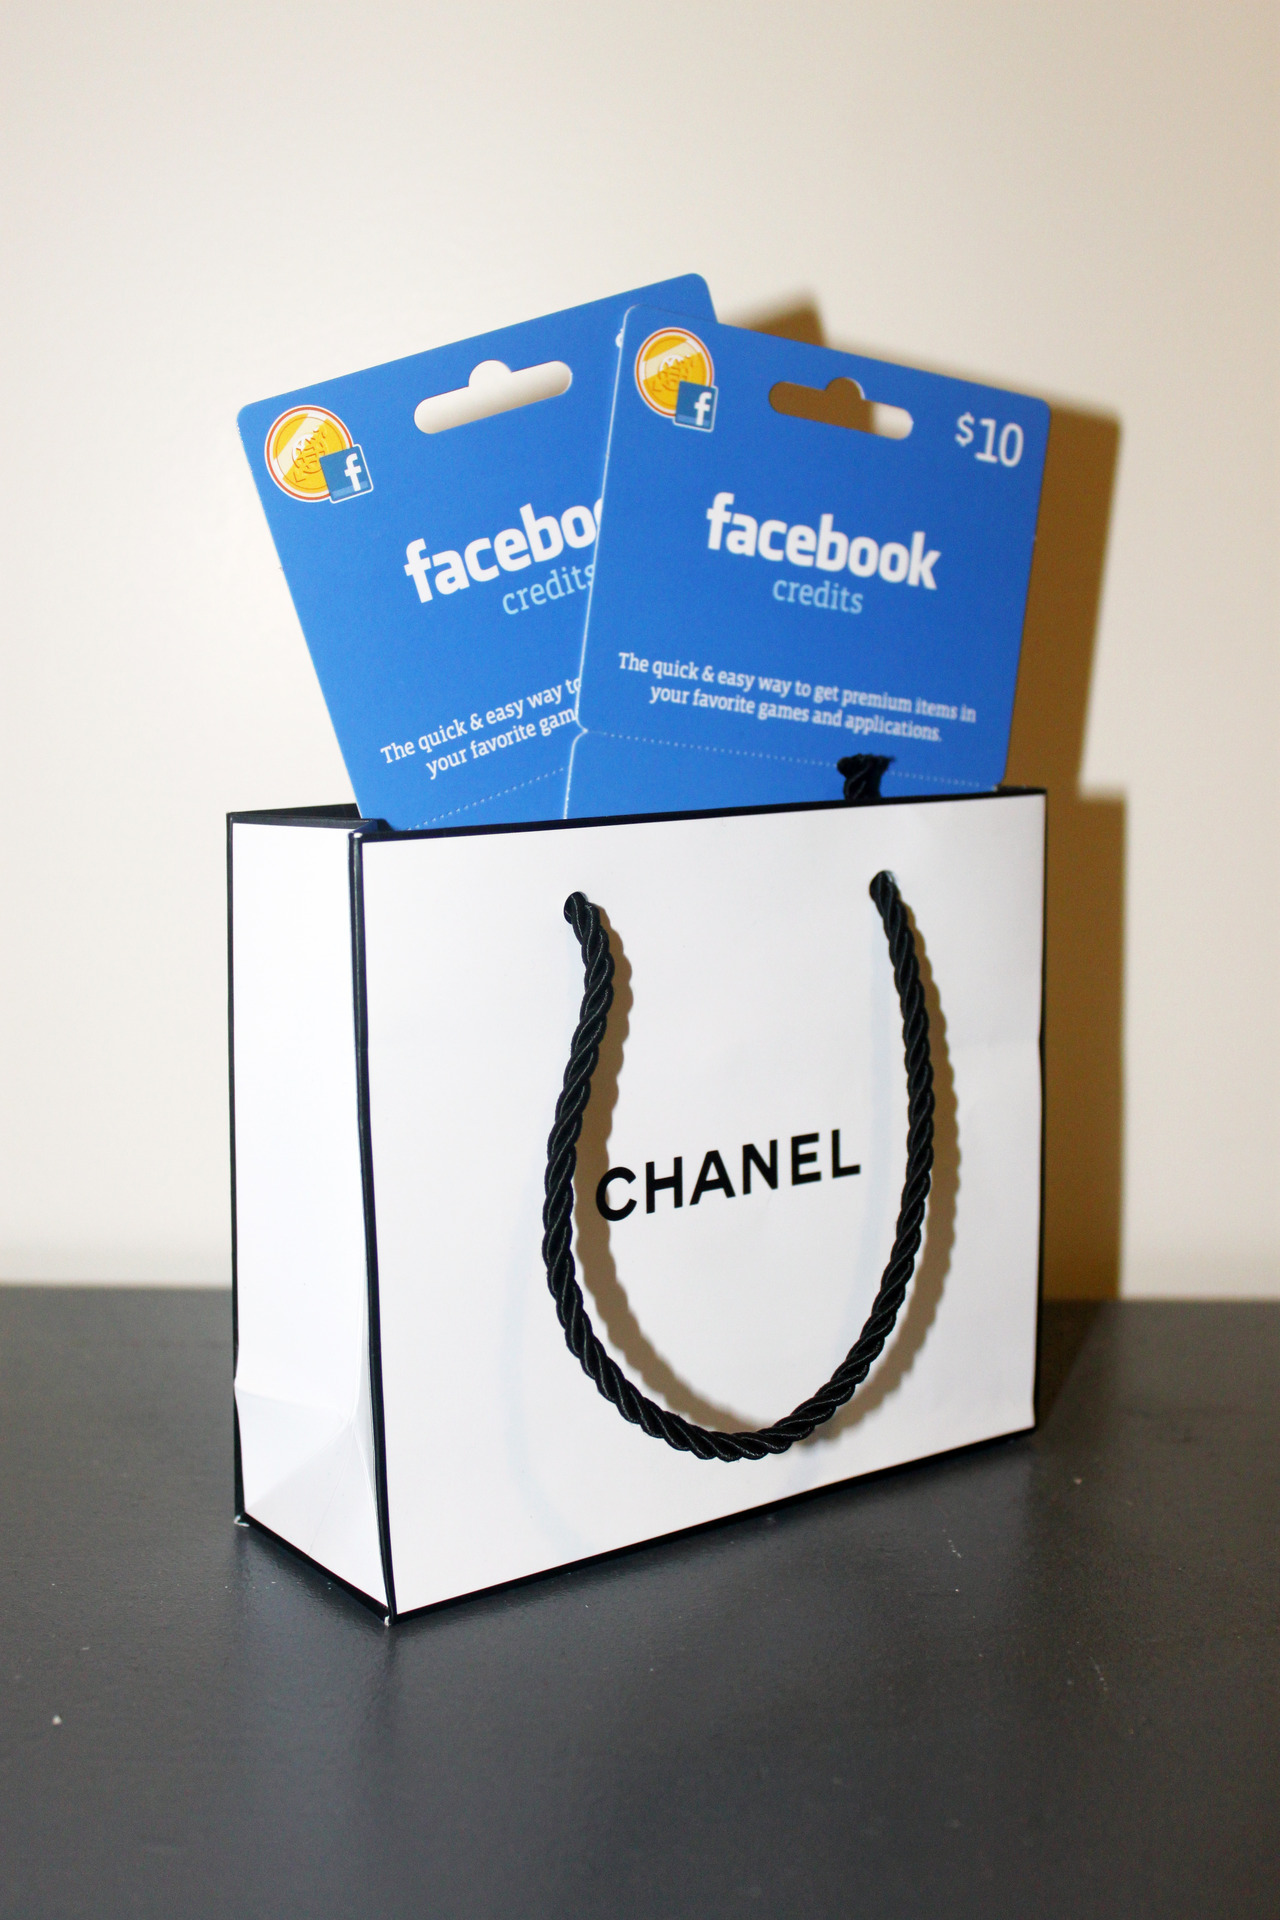 MINI CHANEL BAG WITH TWO $10 FACEBOOK CREDITS GIFT CARDS (PAID FOR AND ACTIVATED), 2012 Sculpture ☐